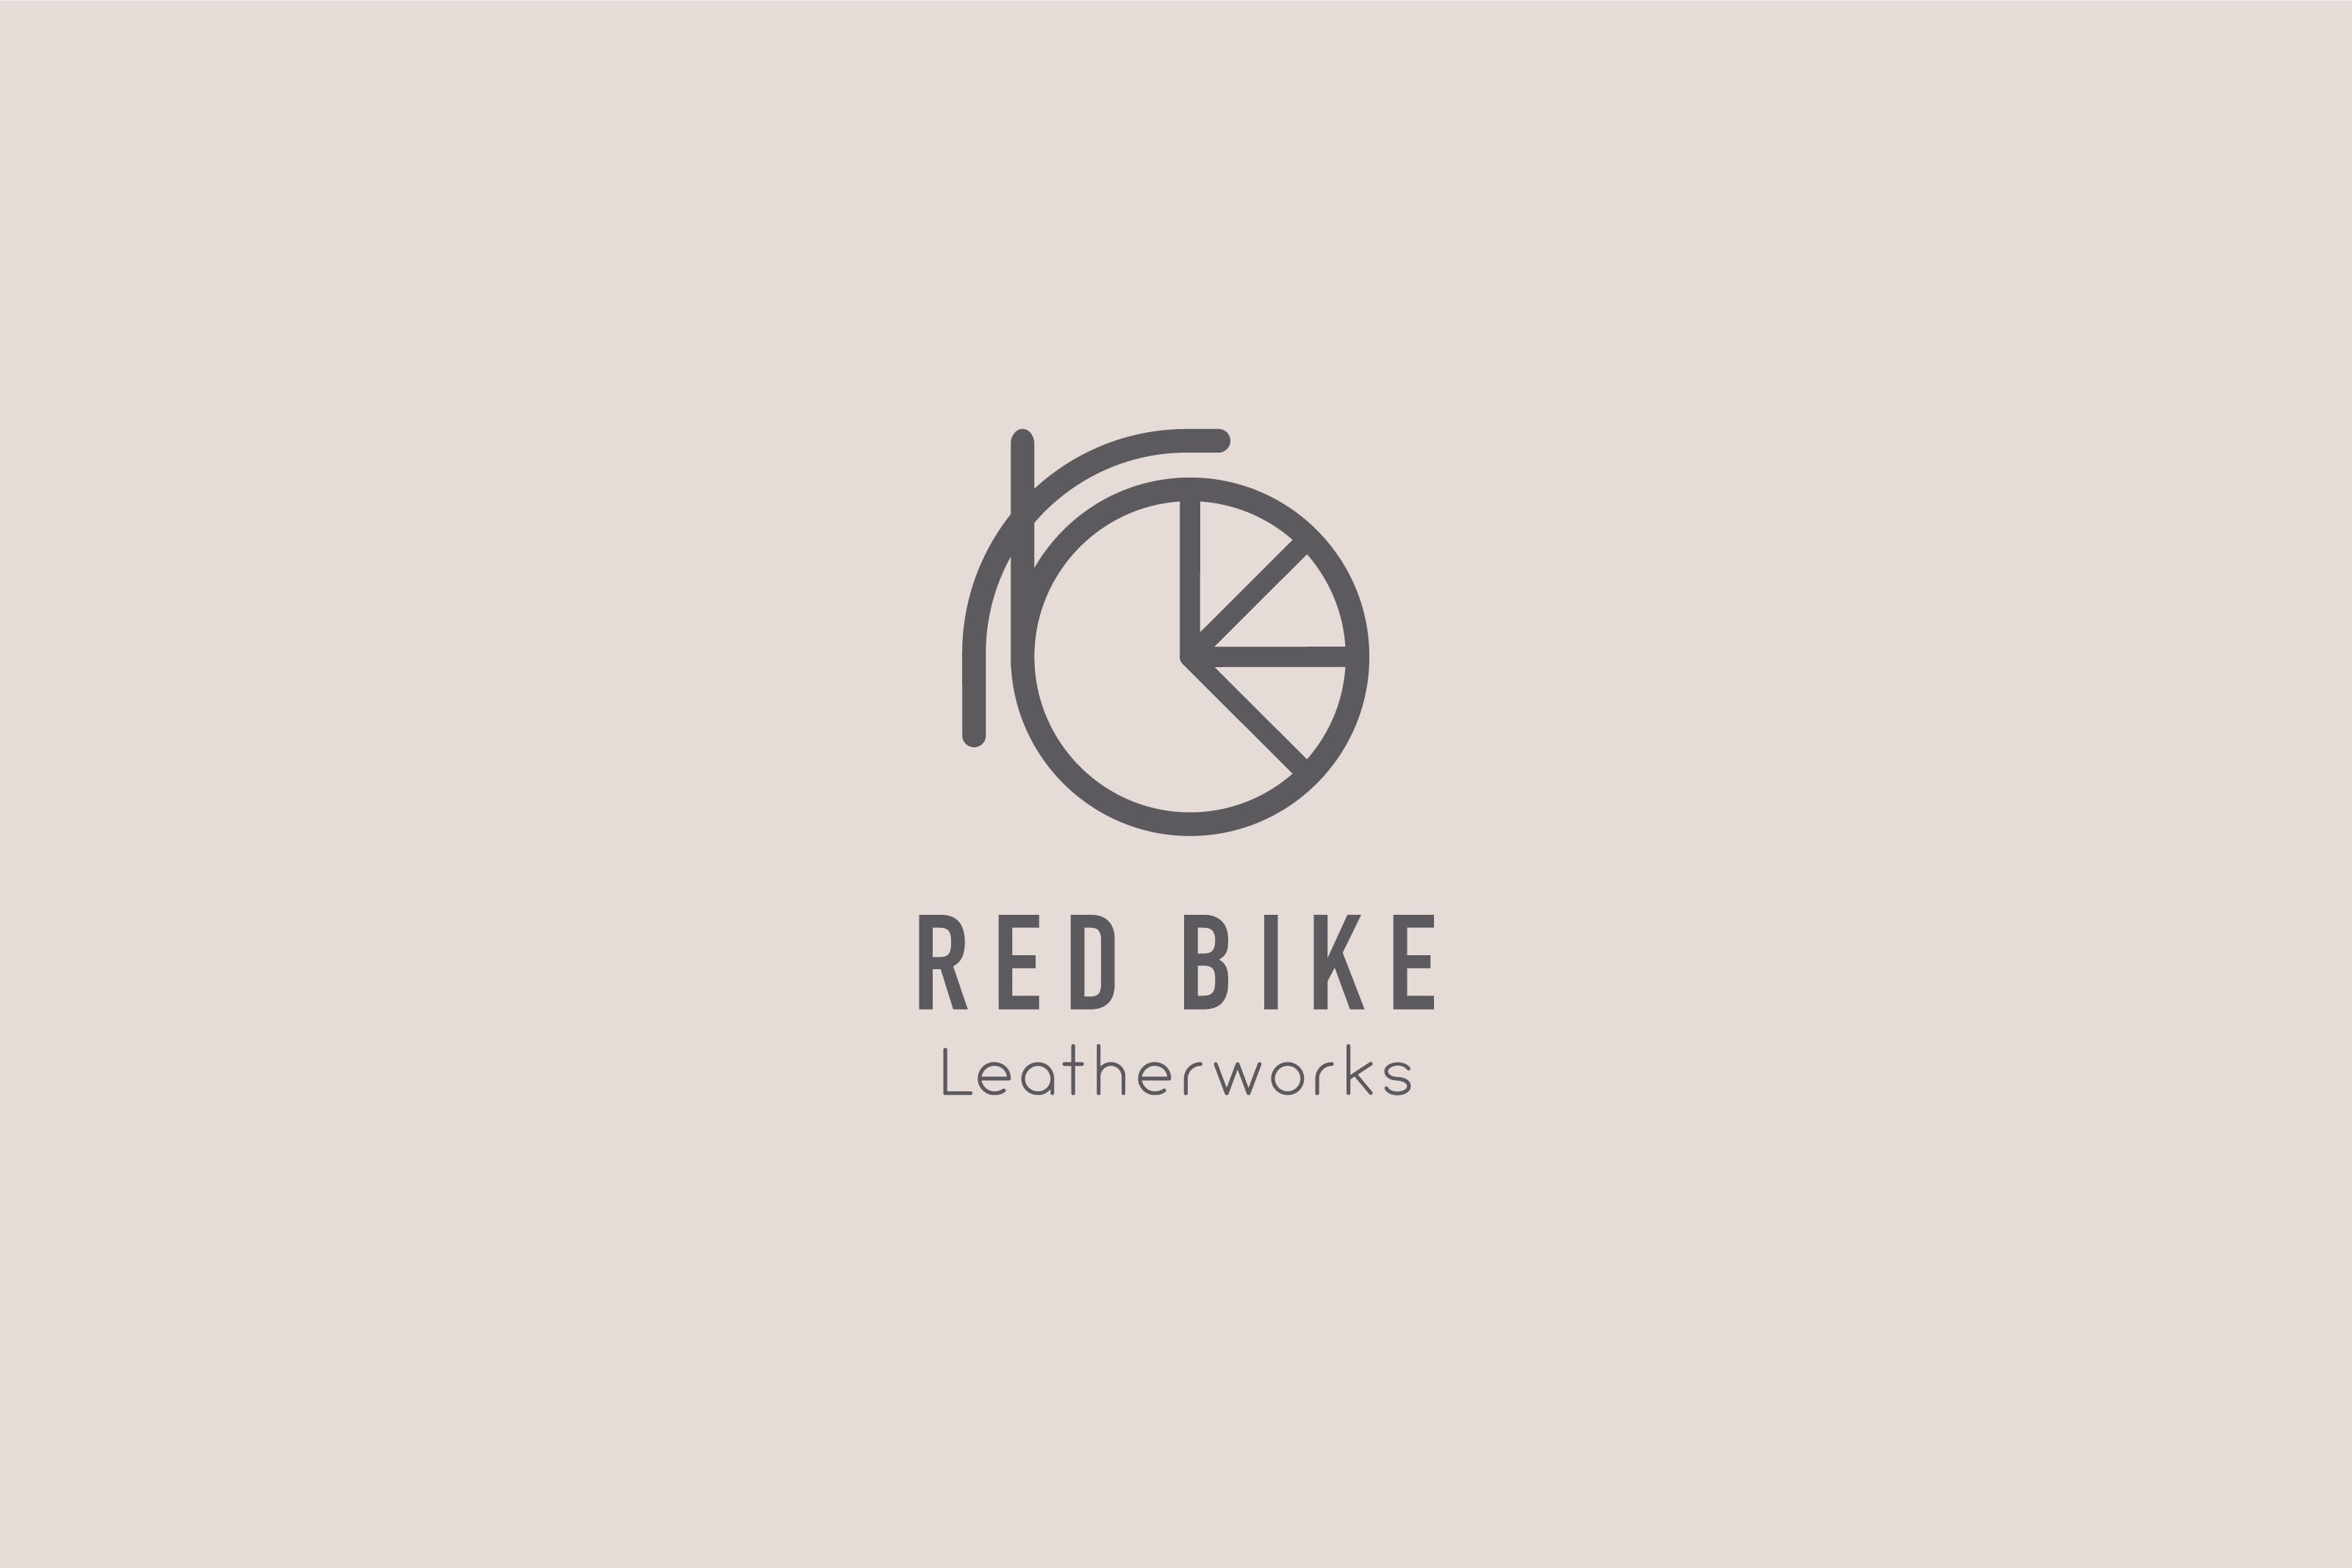 Little Designs Cambridge Red-Bike-Leatherworks-logo-branding